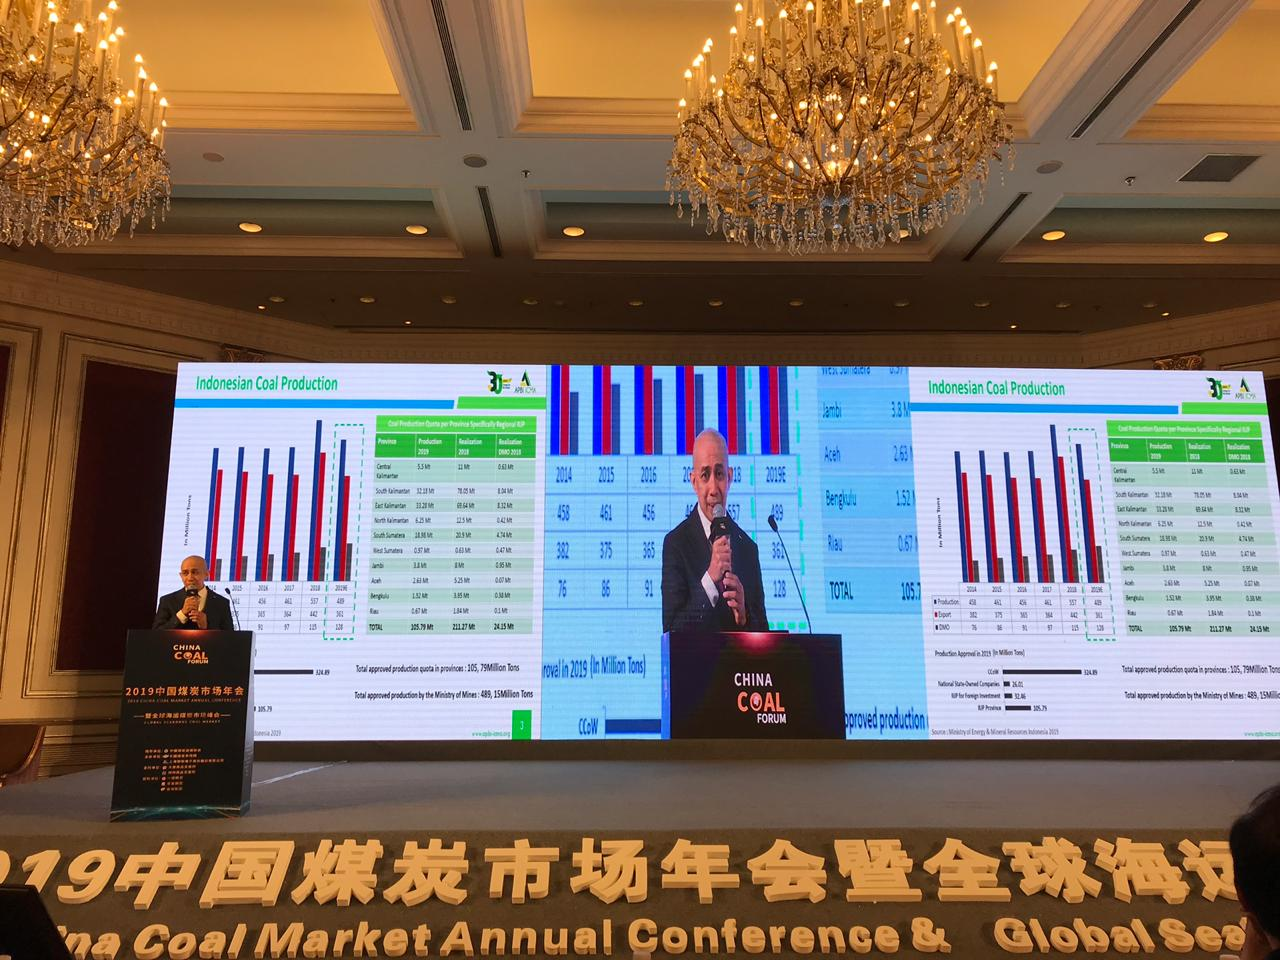 2019 Global Seaborne Coal Summit & China Annual Coal Market tanggal 11 April 2019